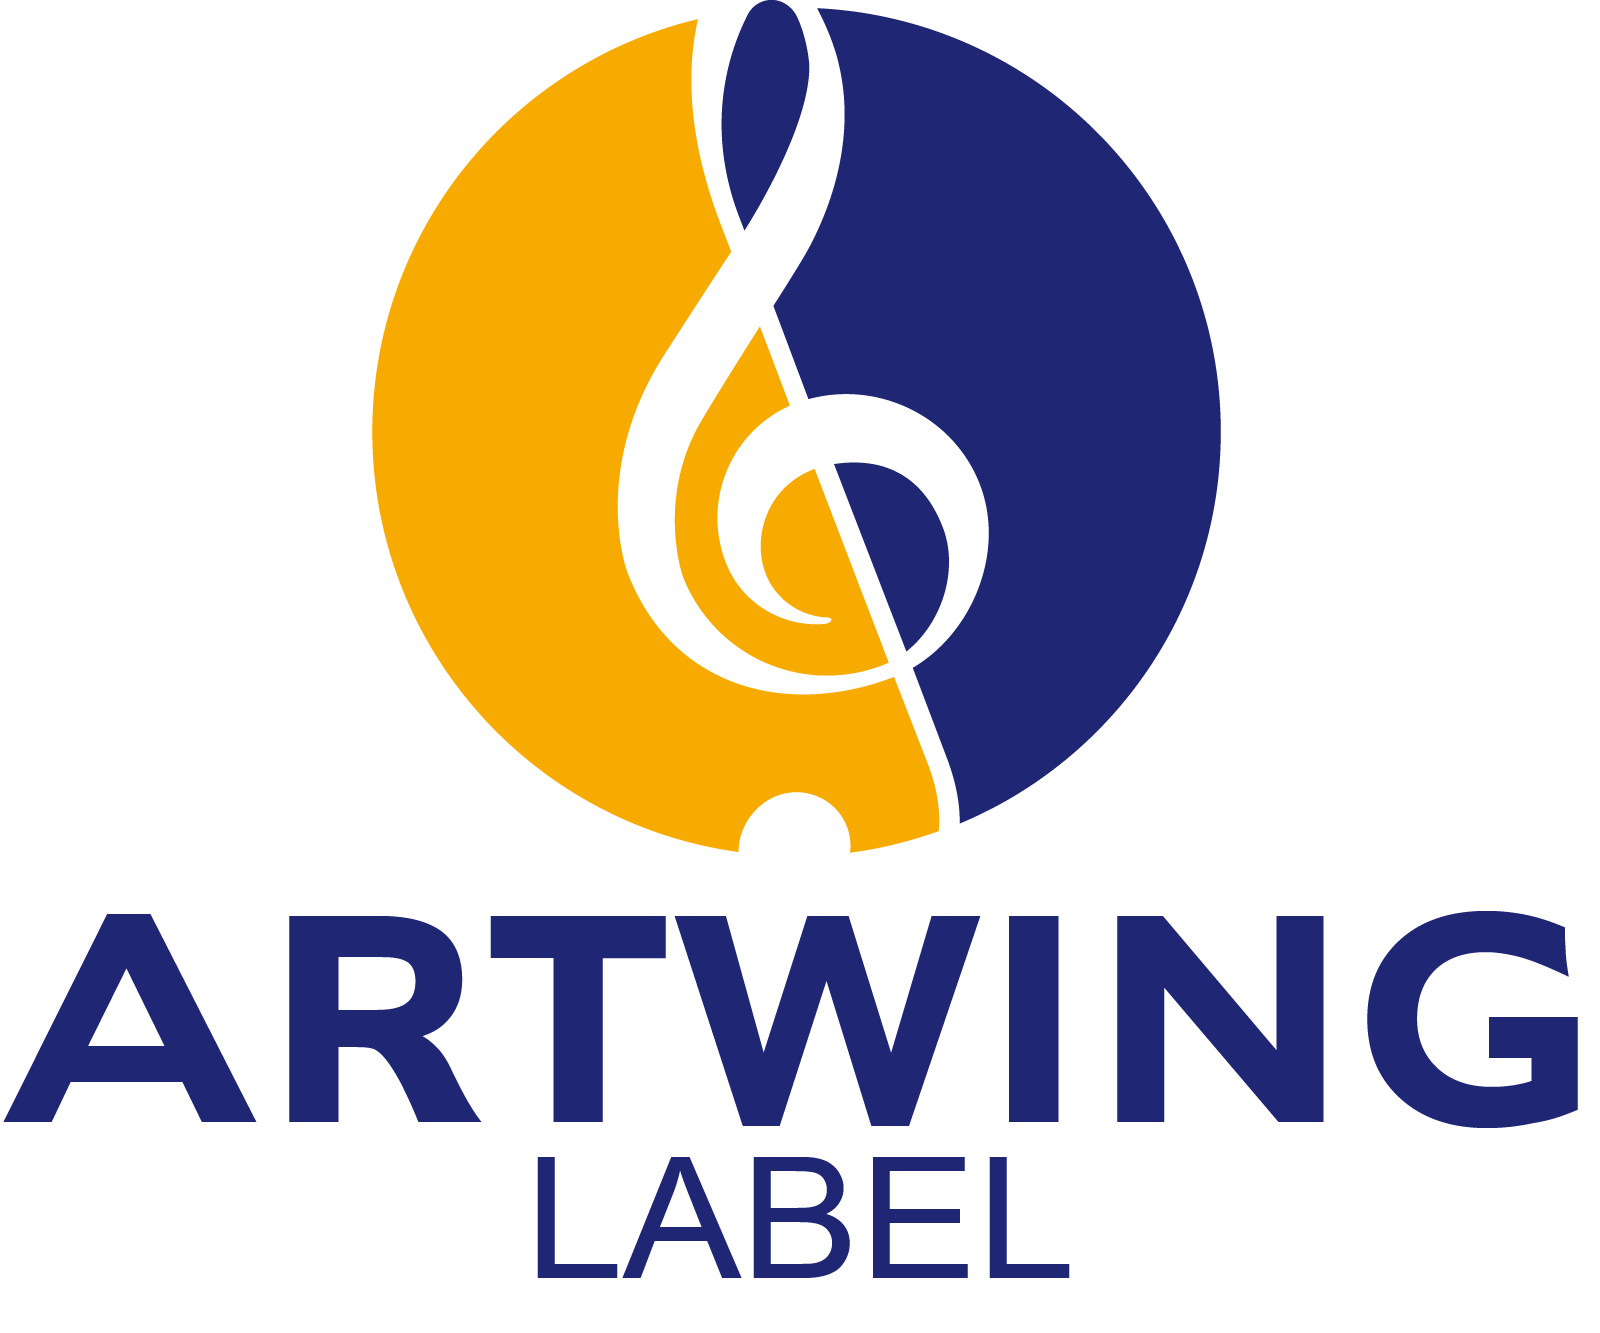 合同会社 ARTWINGLABEL